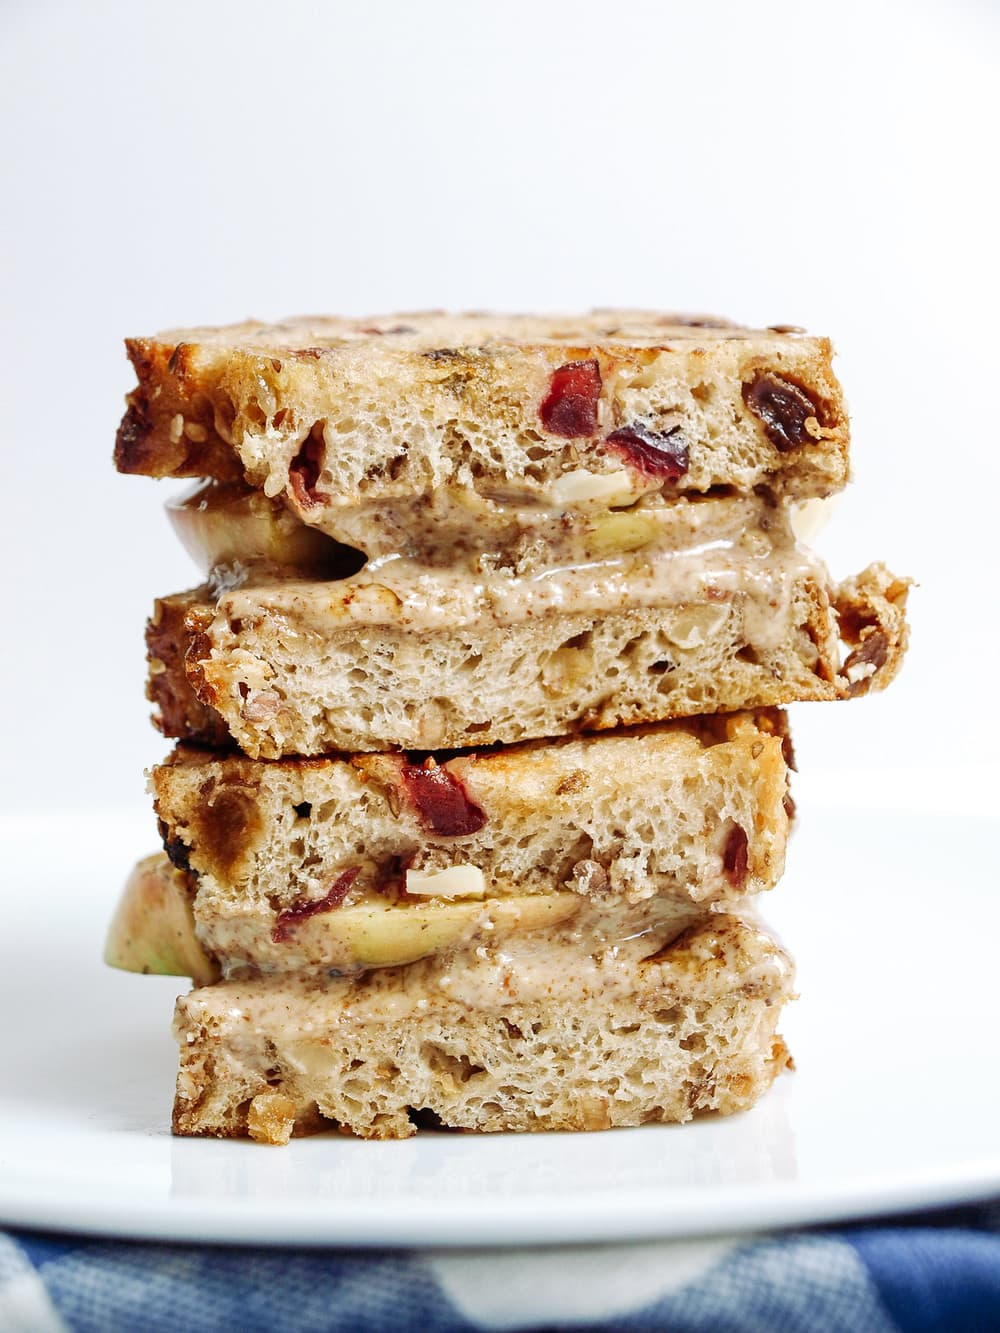 grilled peanut butter and apple sandwich cut in half and stacked on top of each other